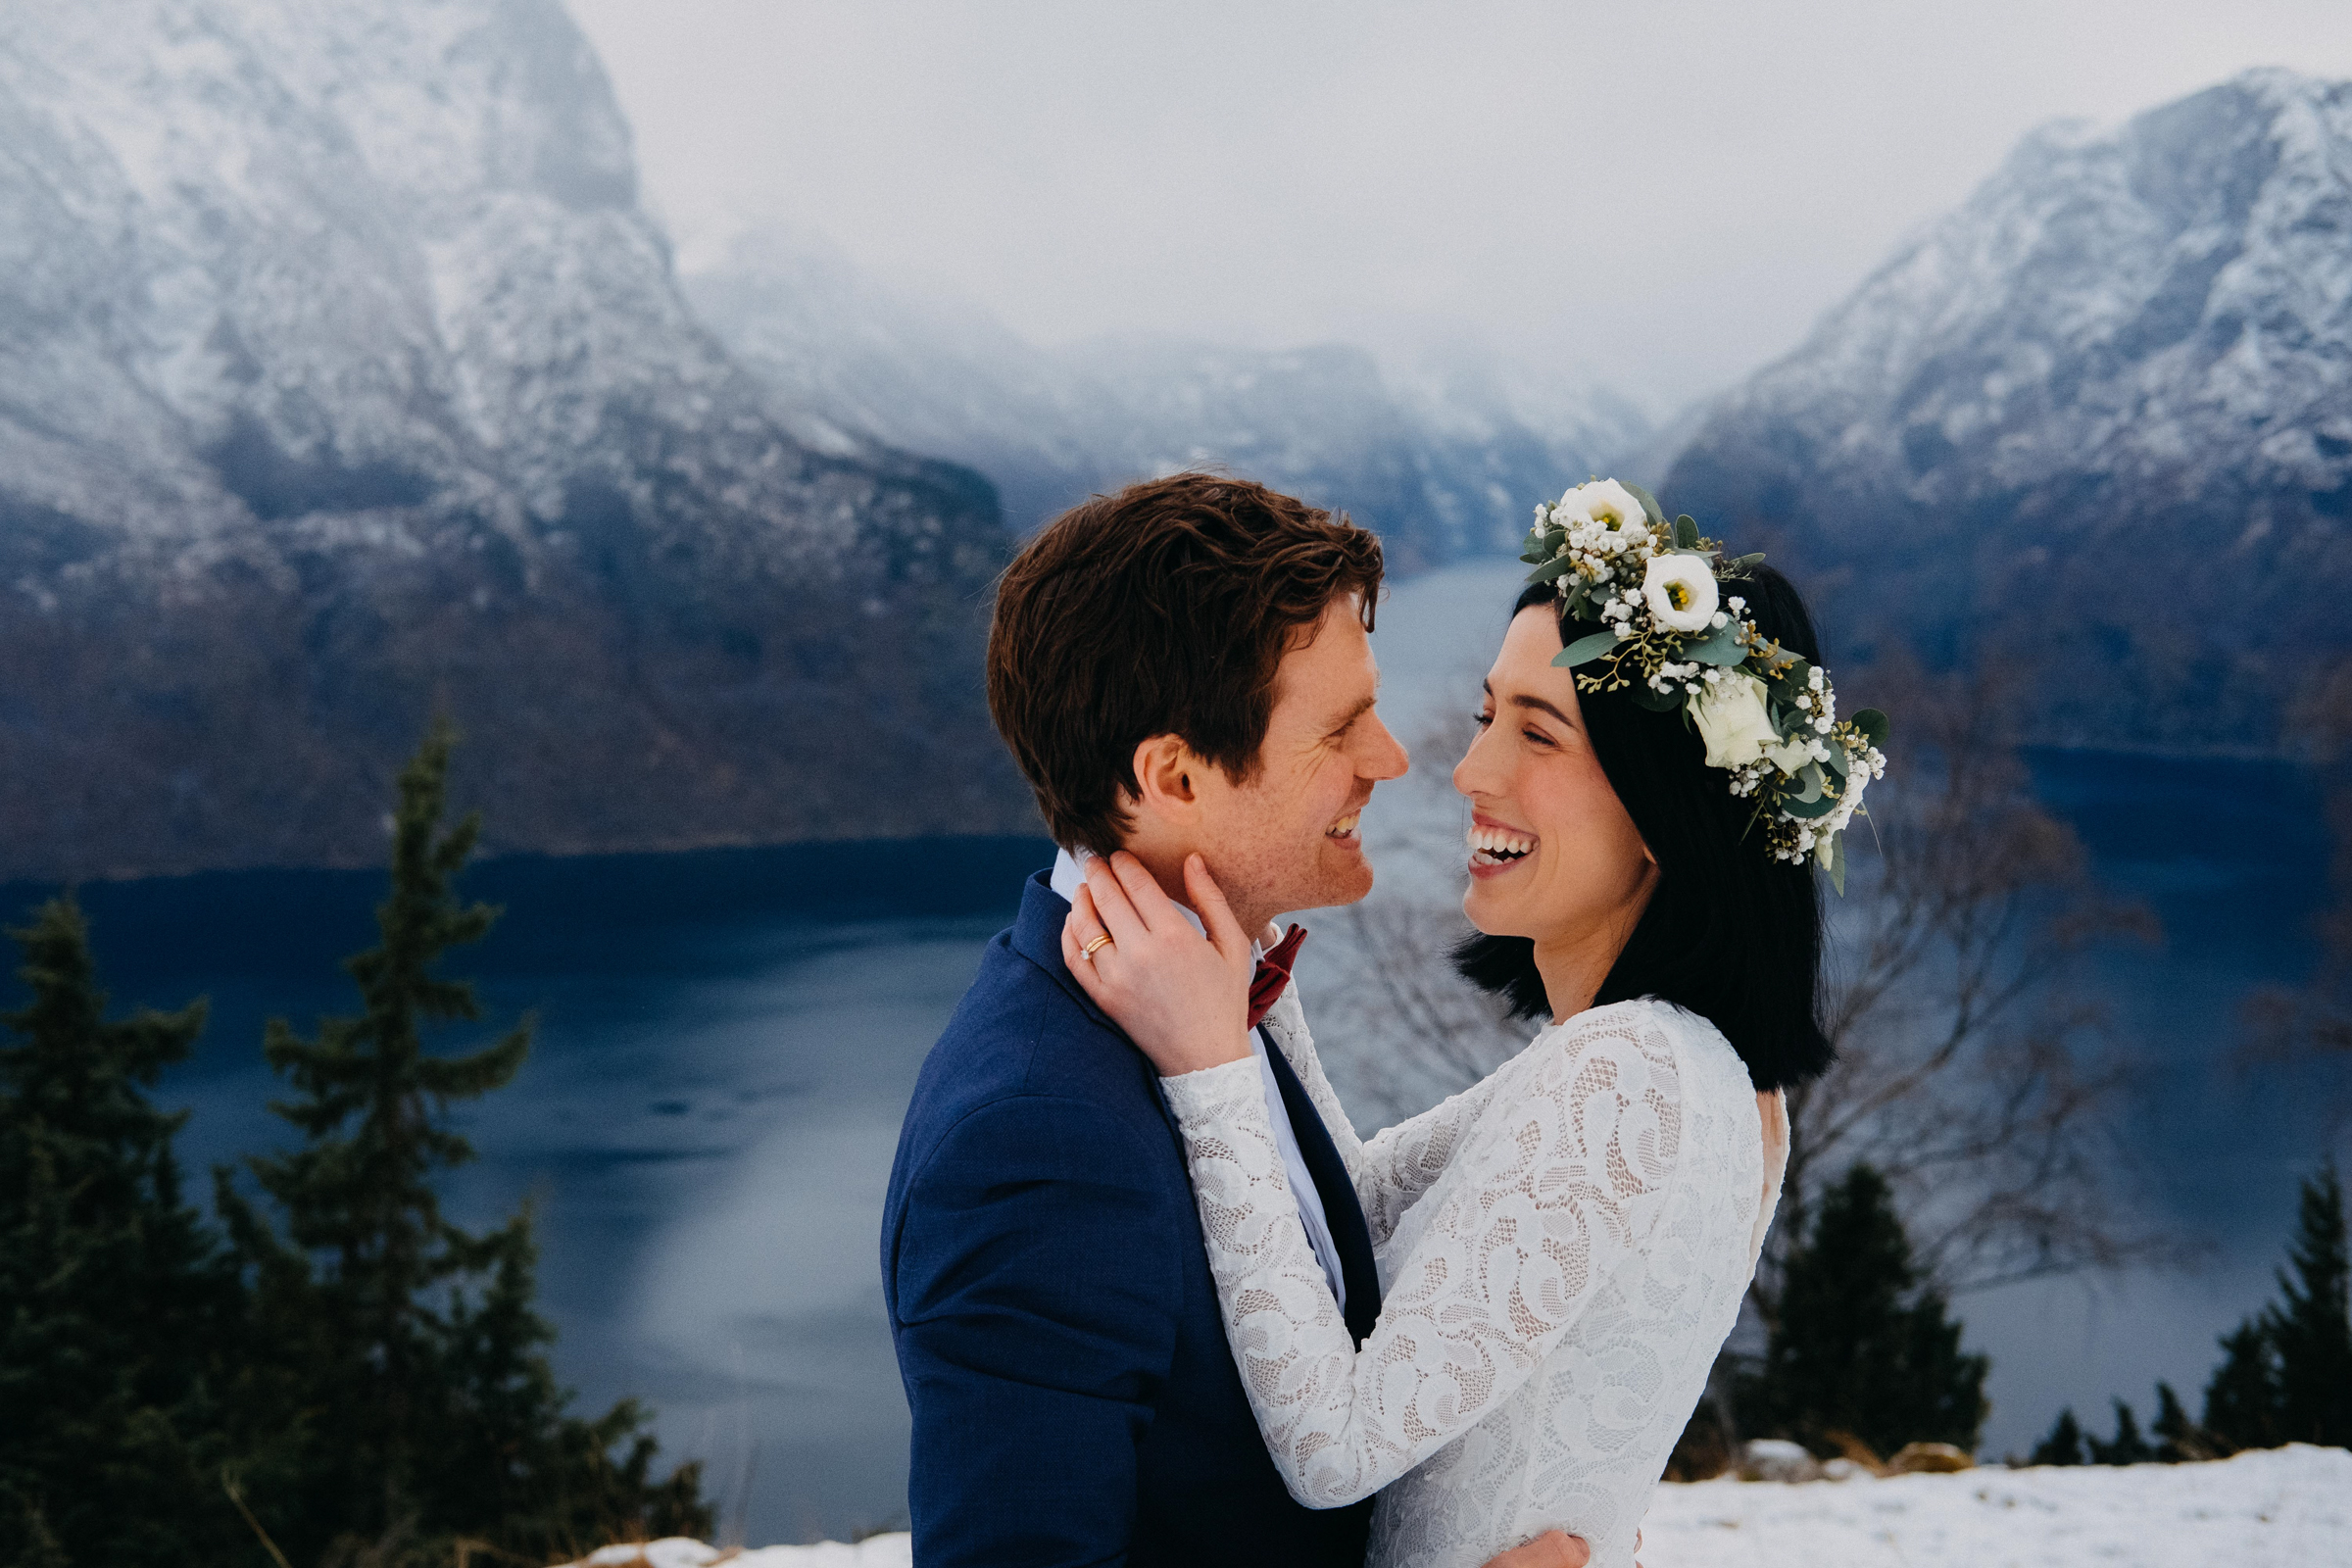 Face to face smiling couple portrait against snowy mountains and fjord - photo by Christin Eide Photography